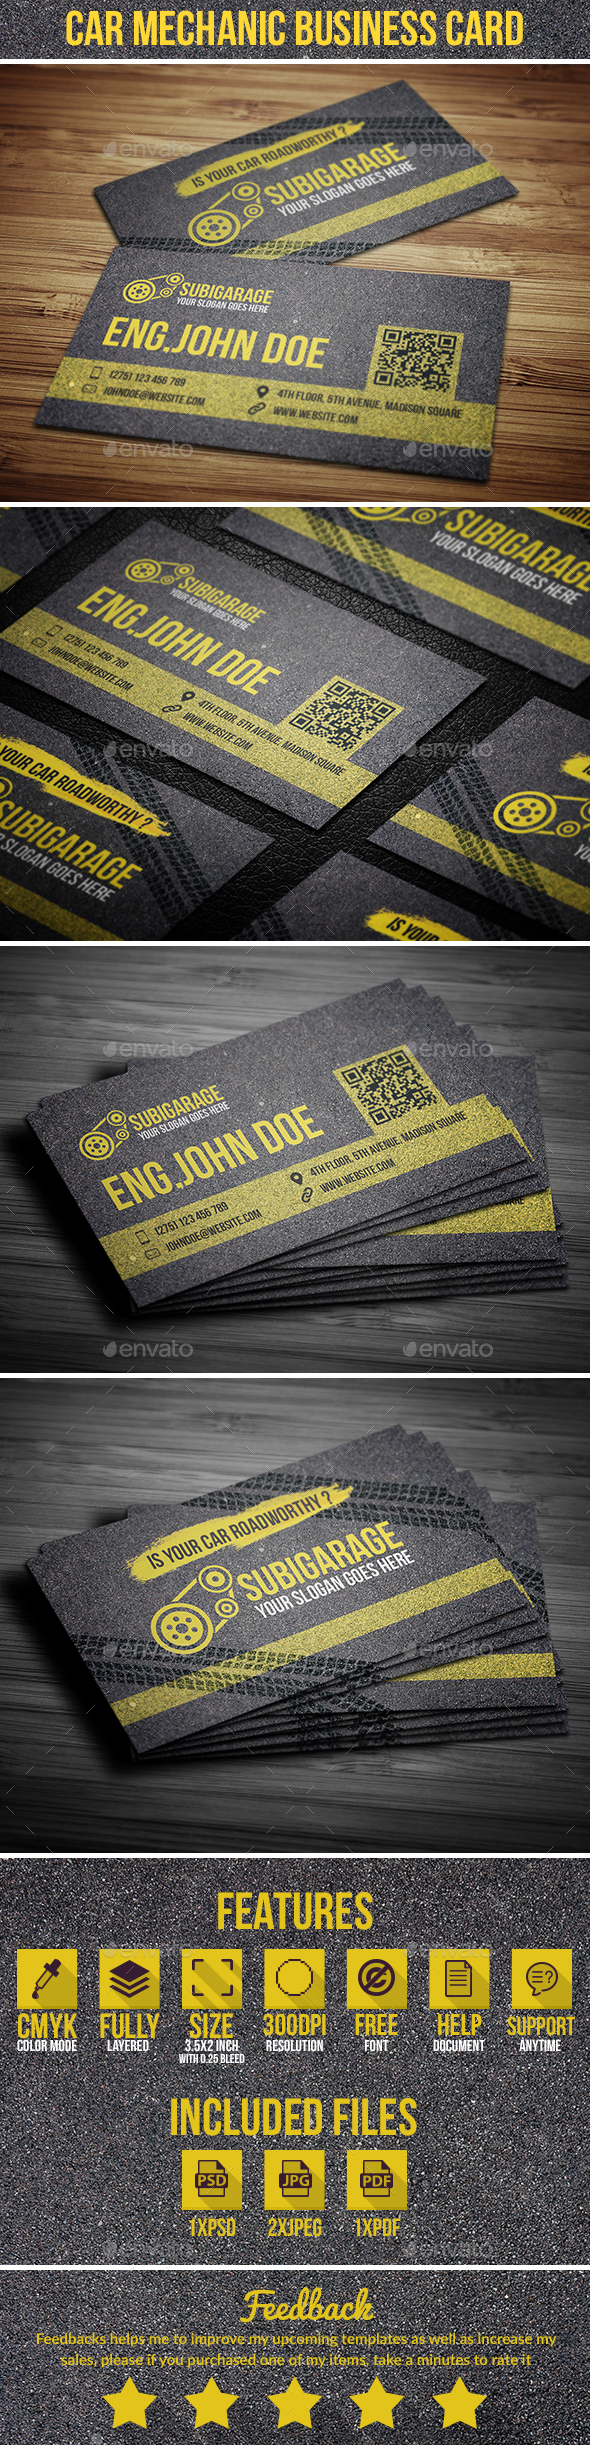 Car Mechanic Business Card - Industry Specific Business Cards